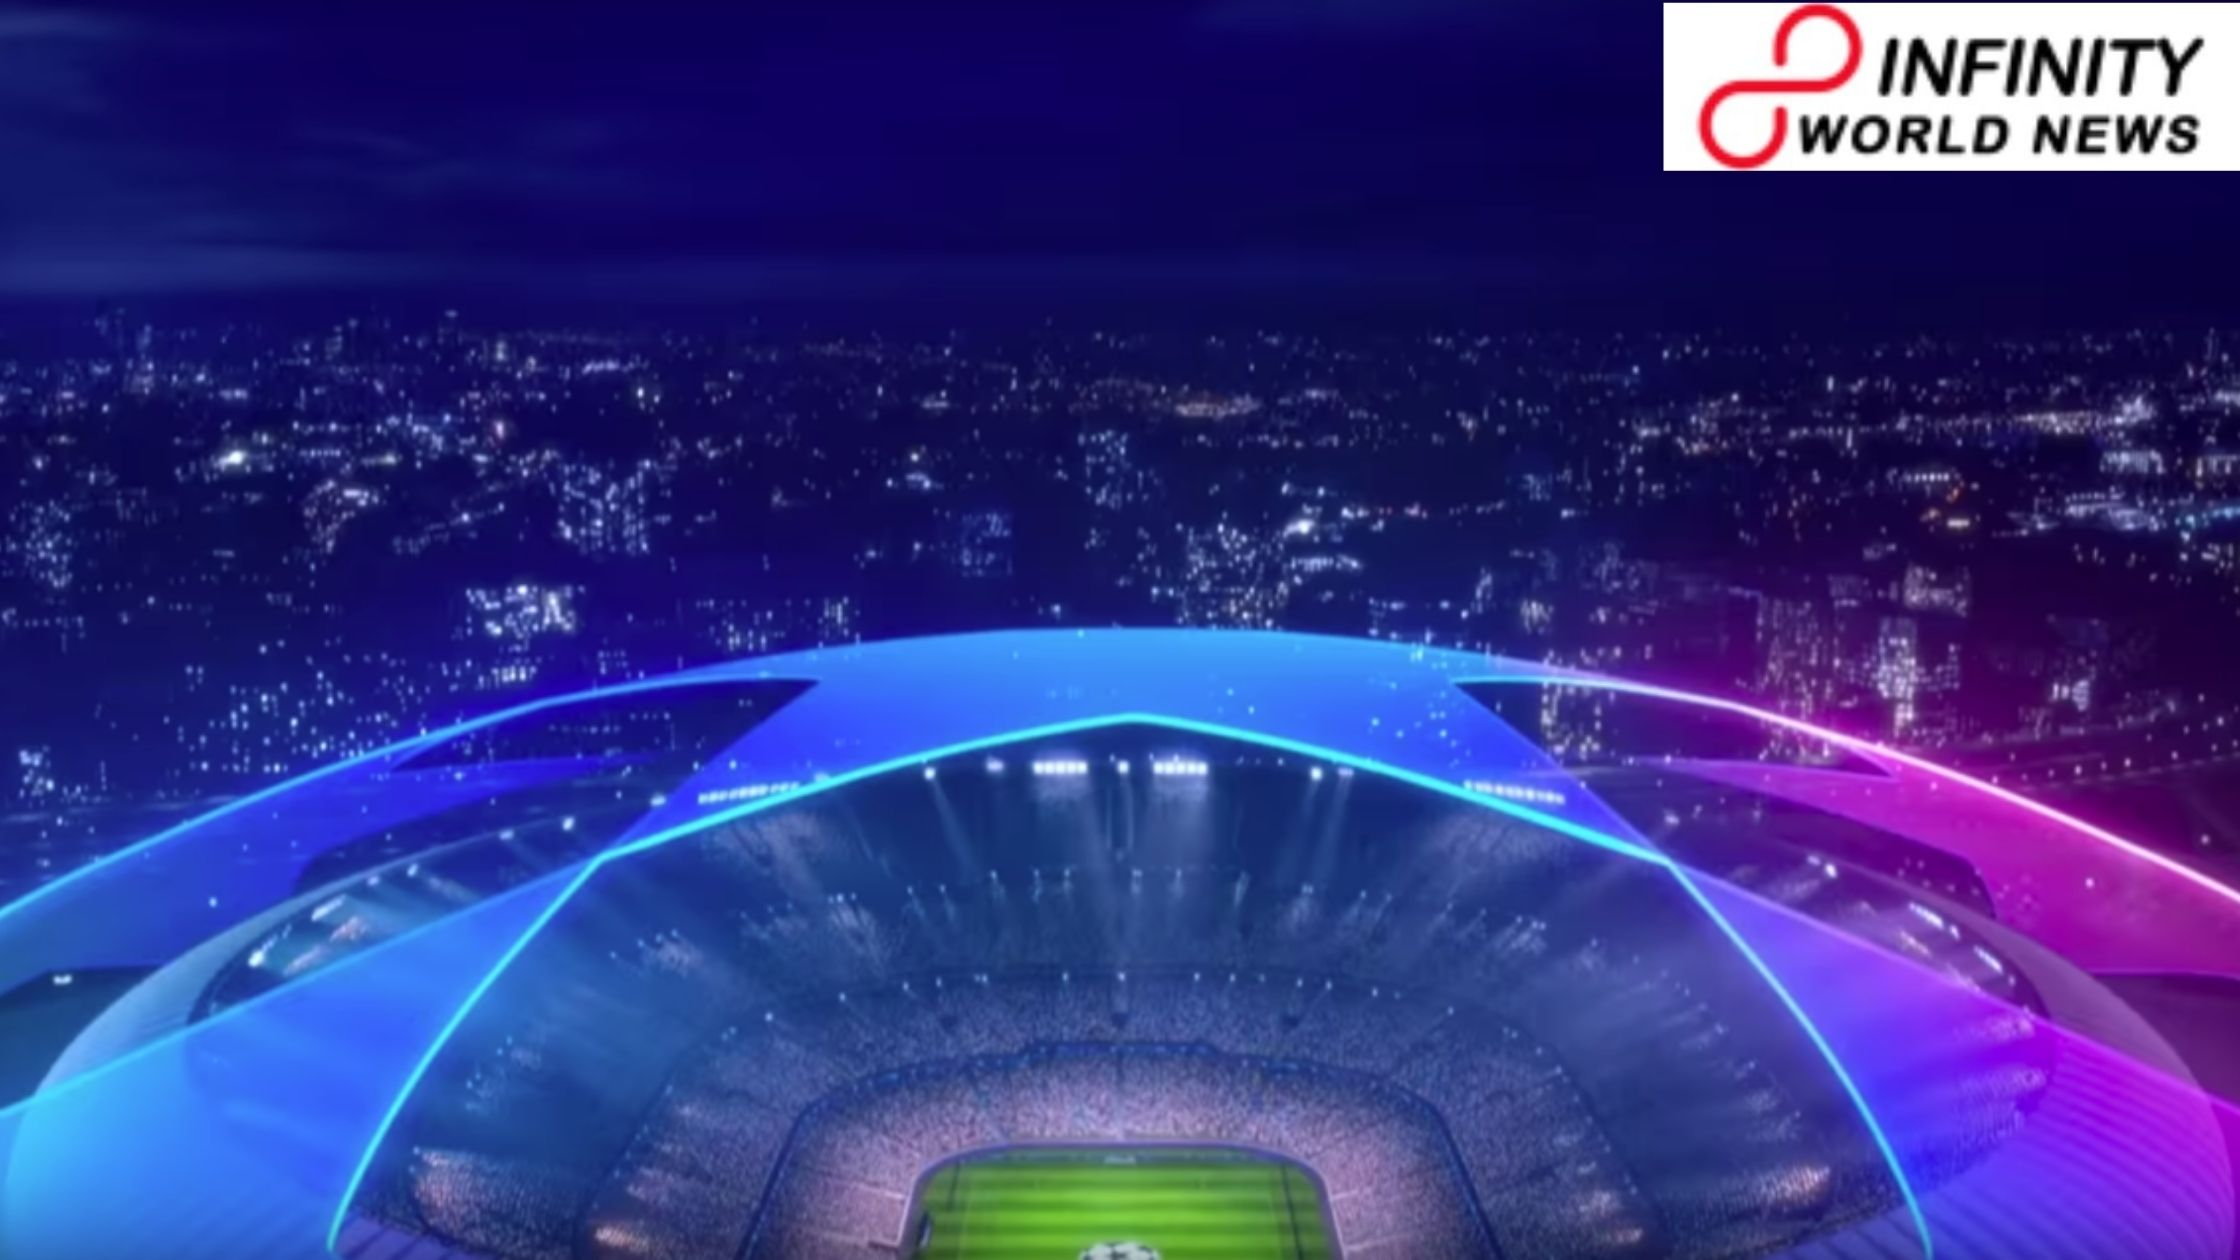 UEFA Champions League Round of 16 draws: Barcelona to confront PSG, holders Bayern to take on Lazio